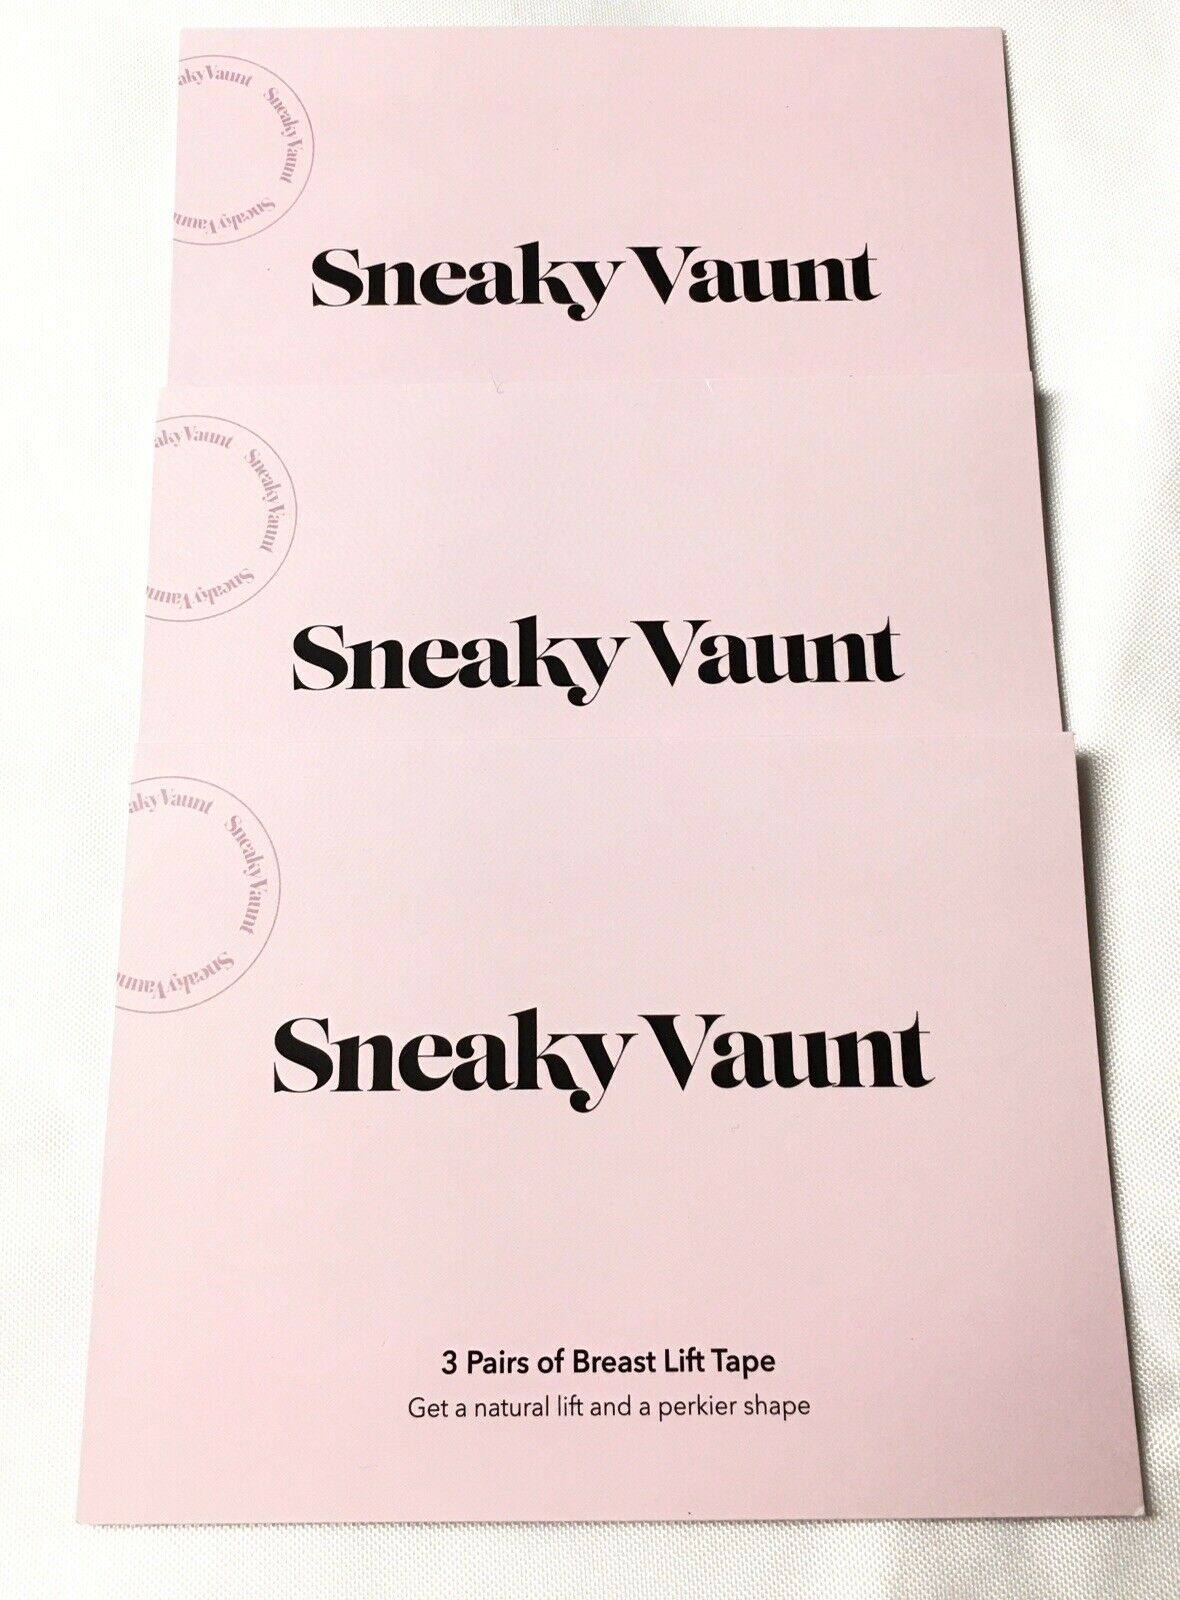 NEW Sneaky Vaunt Lot Of 3 With 3Pairs of Breast Lift Tape Each